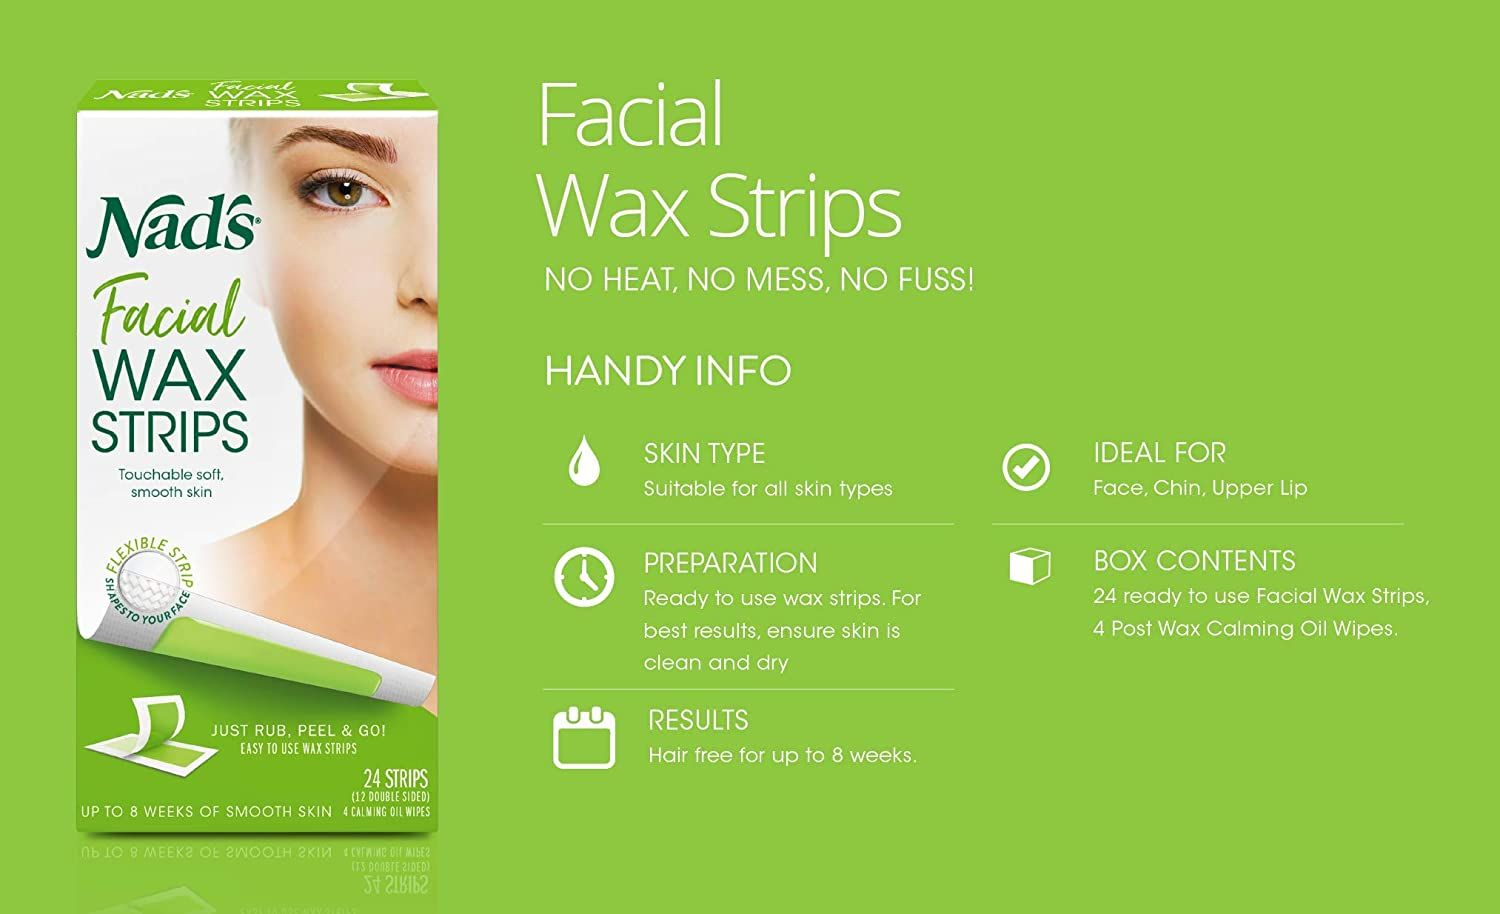 Nad's Facial Wax Strips Hypoallergenic All Skin Types